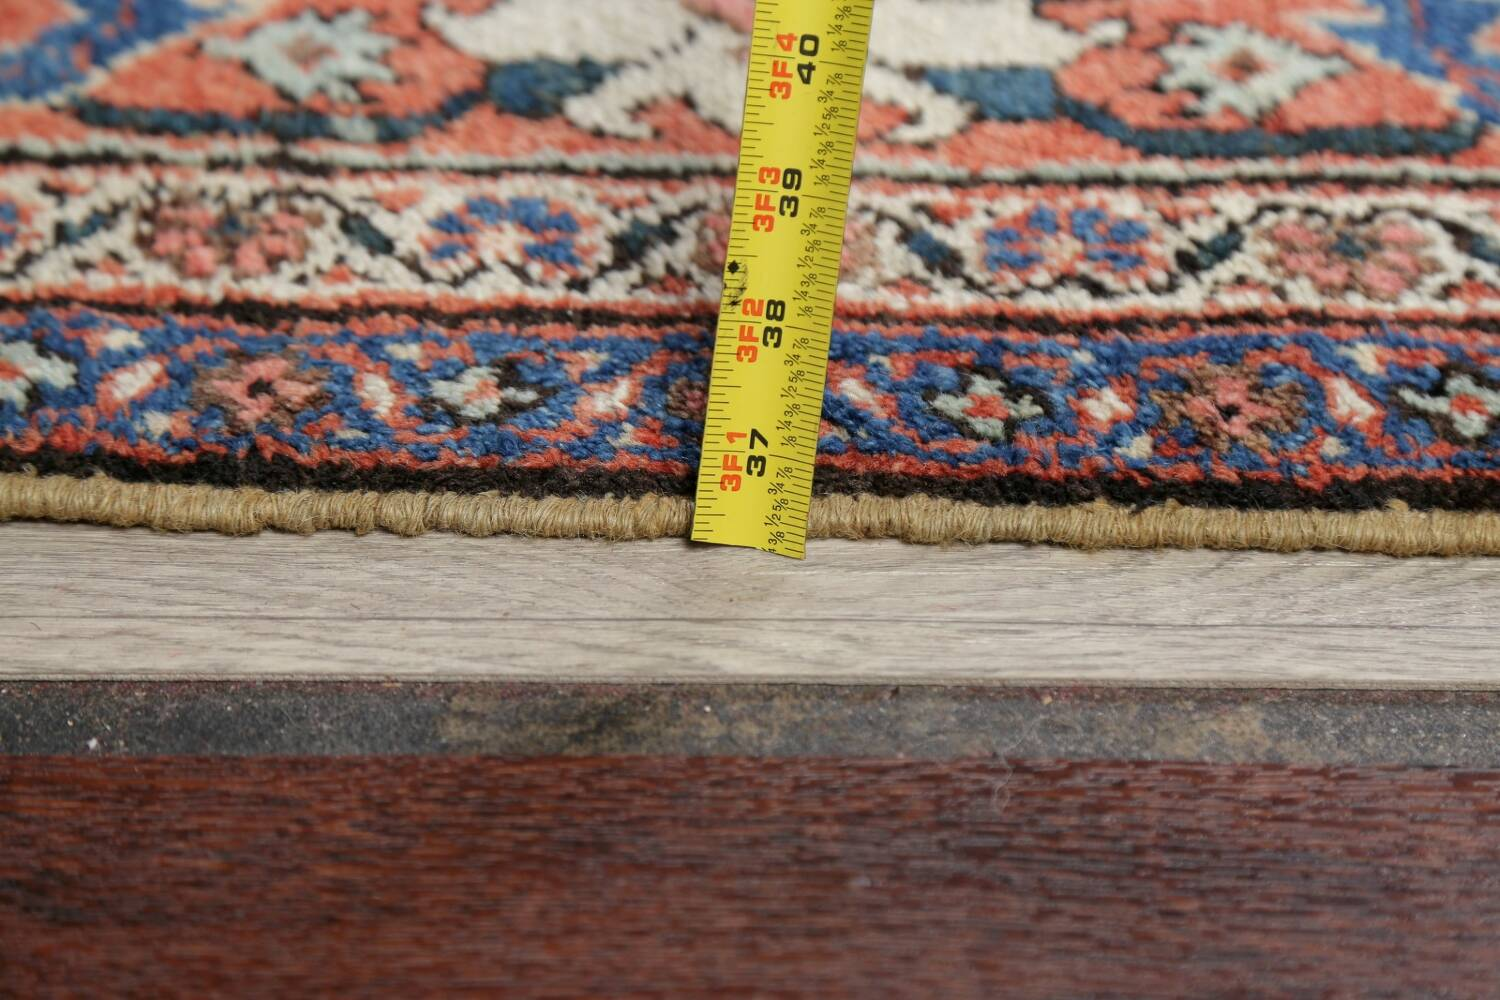 Antique Pre-1900 Sultanabad Persian Rug 13x22 Large image 22